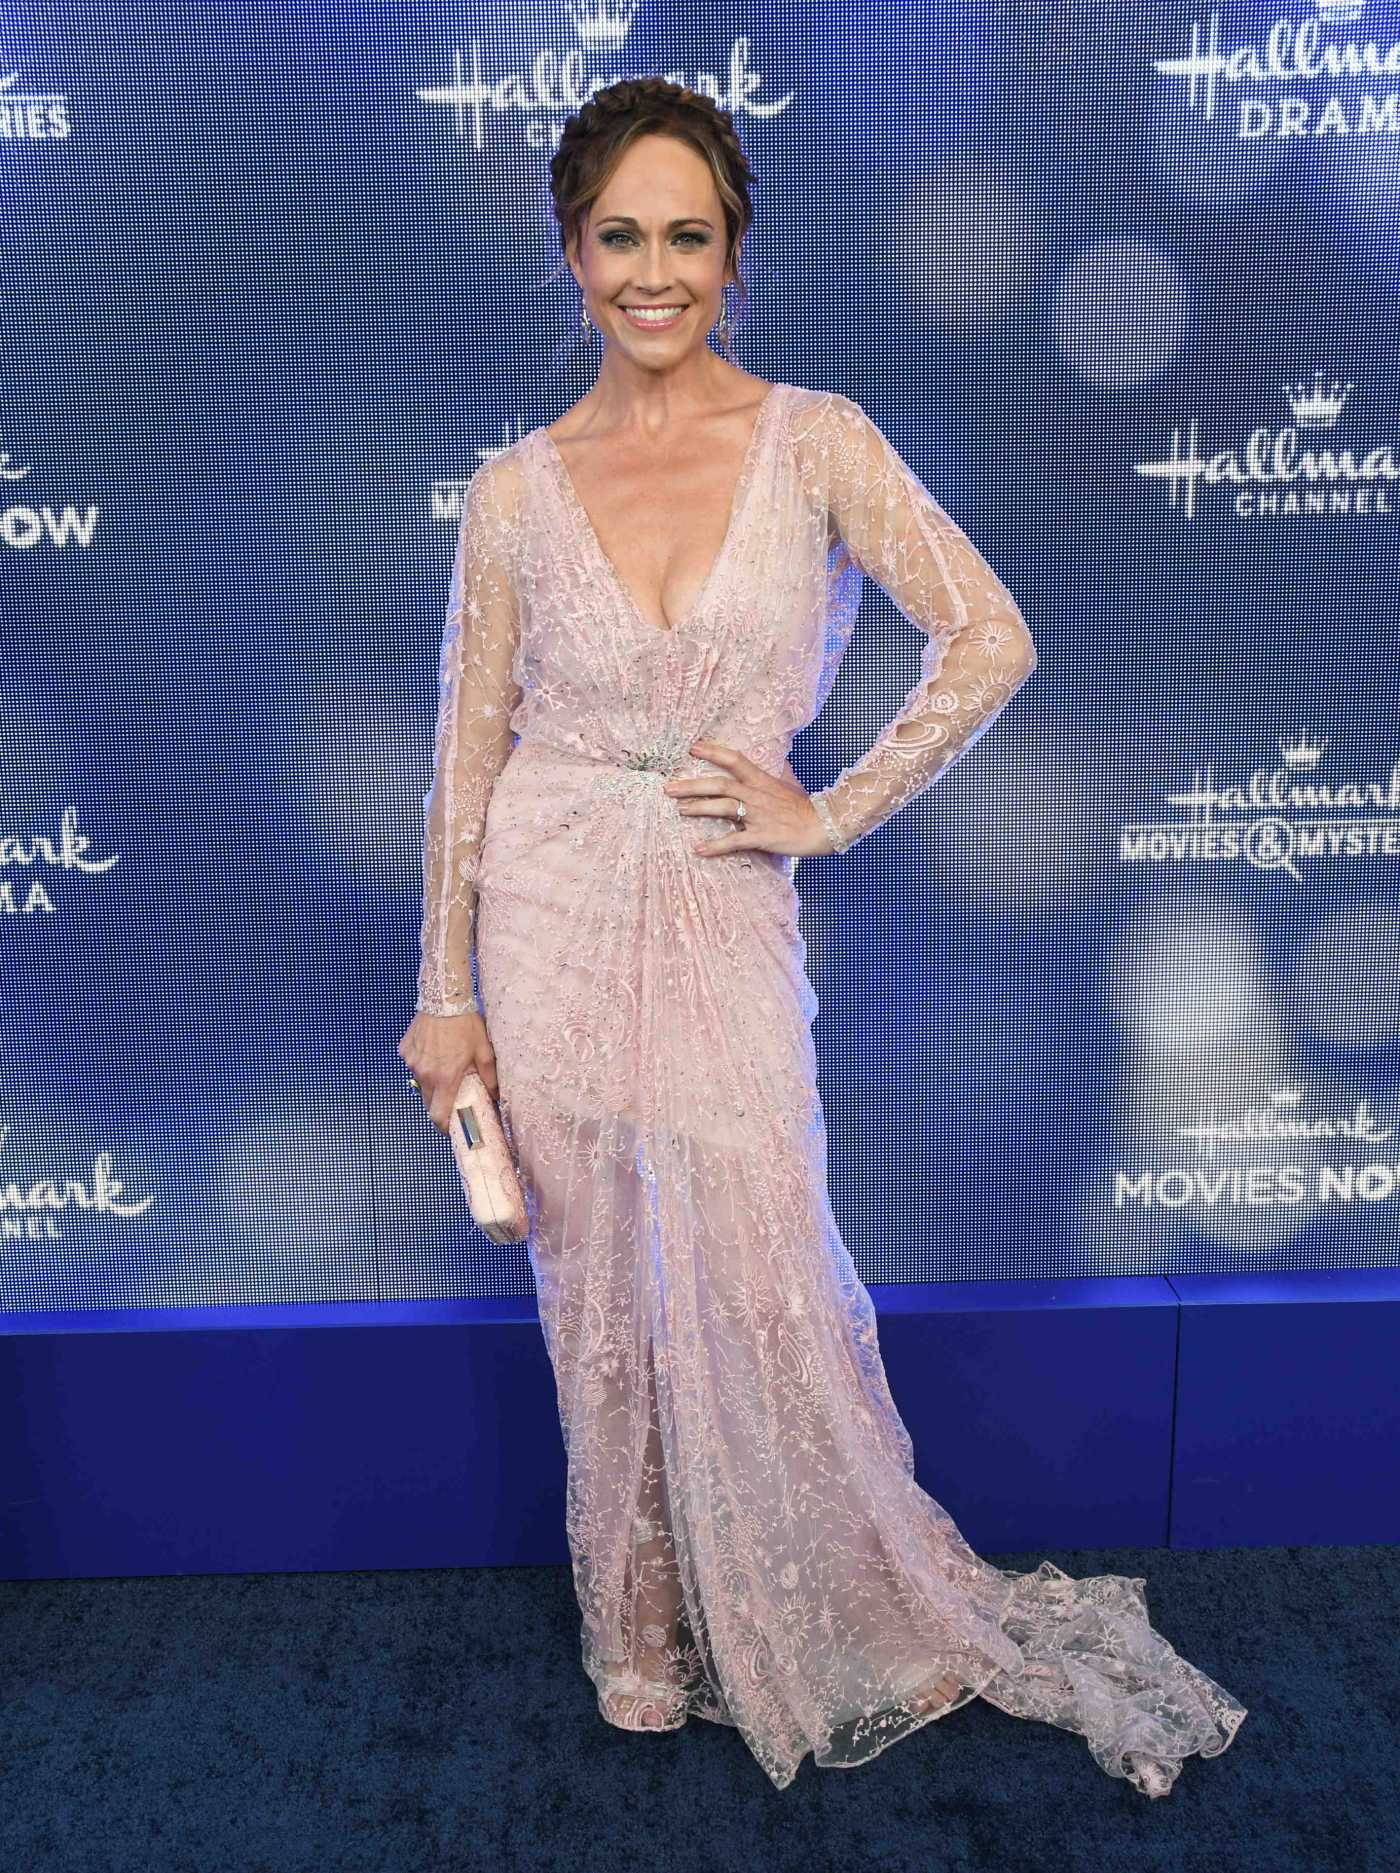 Nikki DeLoach Attends Hallmark Movies and Mysteries Summer TCA Press Tour Event in Beverly Hills 07/26/2019